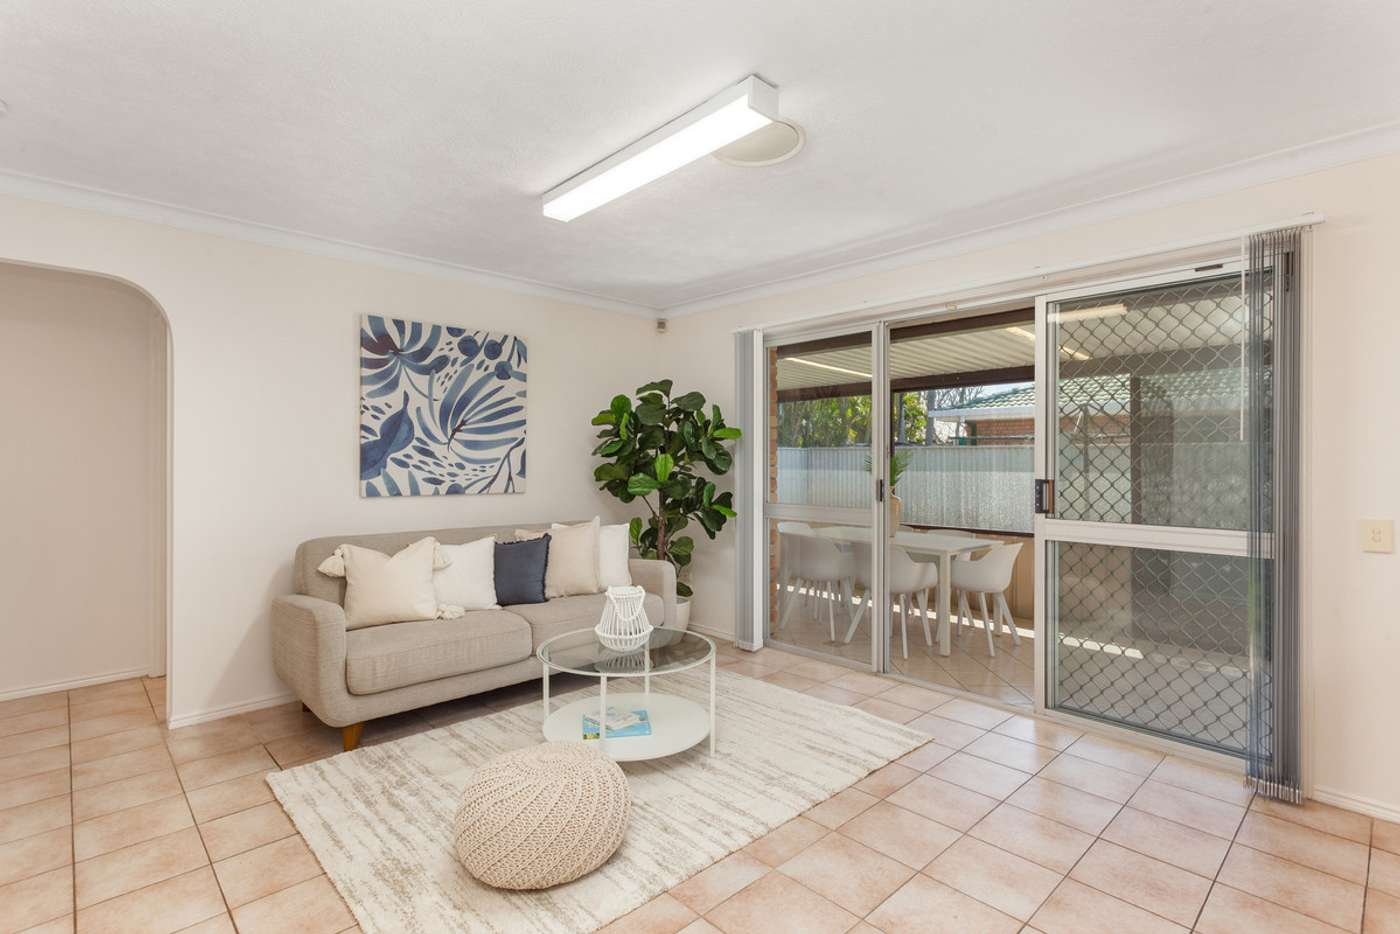 Sixth view of Homely house listing, 33 Dunlin Drive, Burleigh Waters QLD 4220